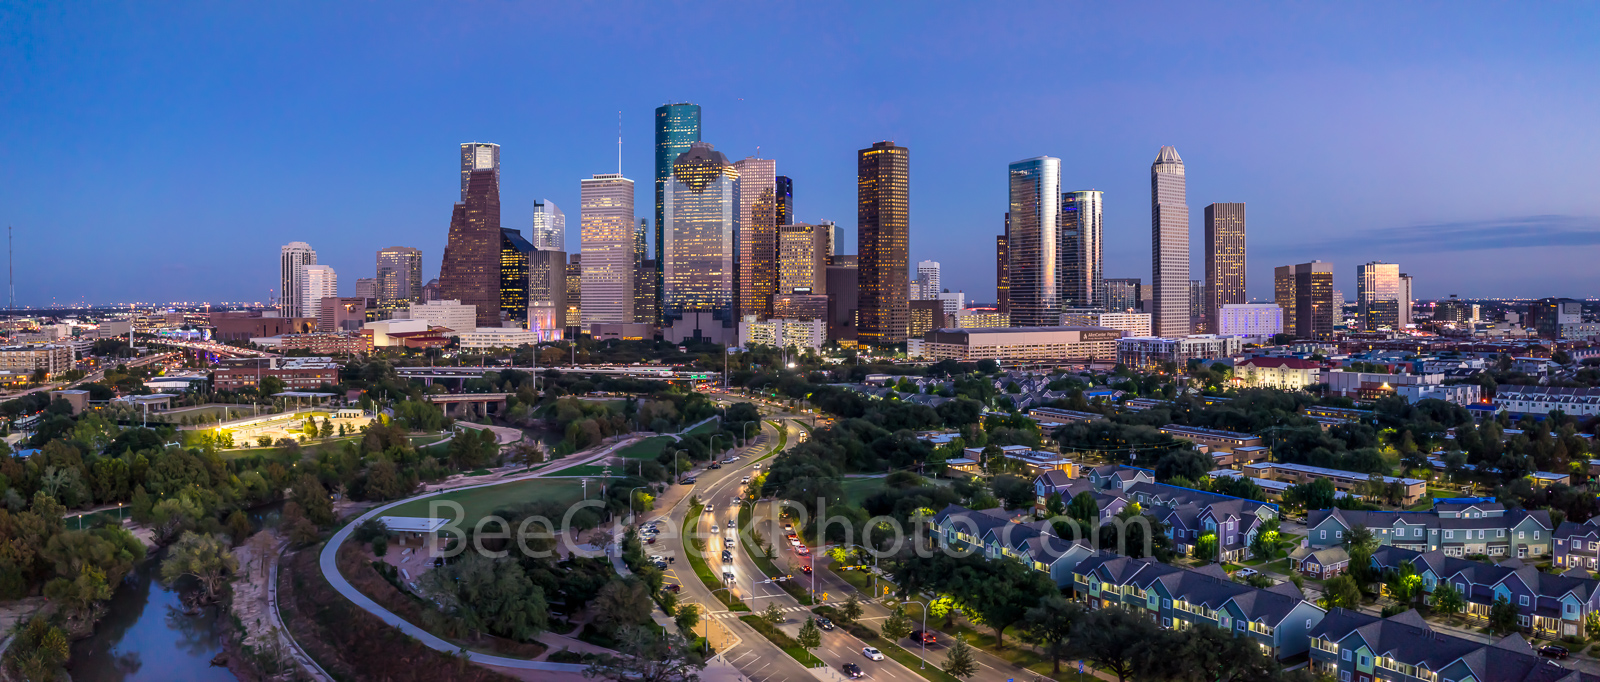 Houston skyline, Houston, skyline, twilight, aerial, panorama, pano, houston cityscape, city, downtown, Hurricane Harvey, skyscrapers, Allen Parkway, Jamail skate park,  houston skyline stock, , photo